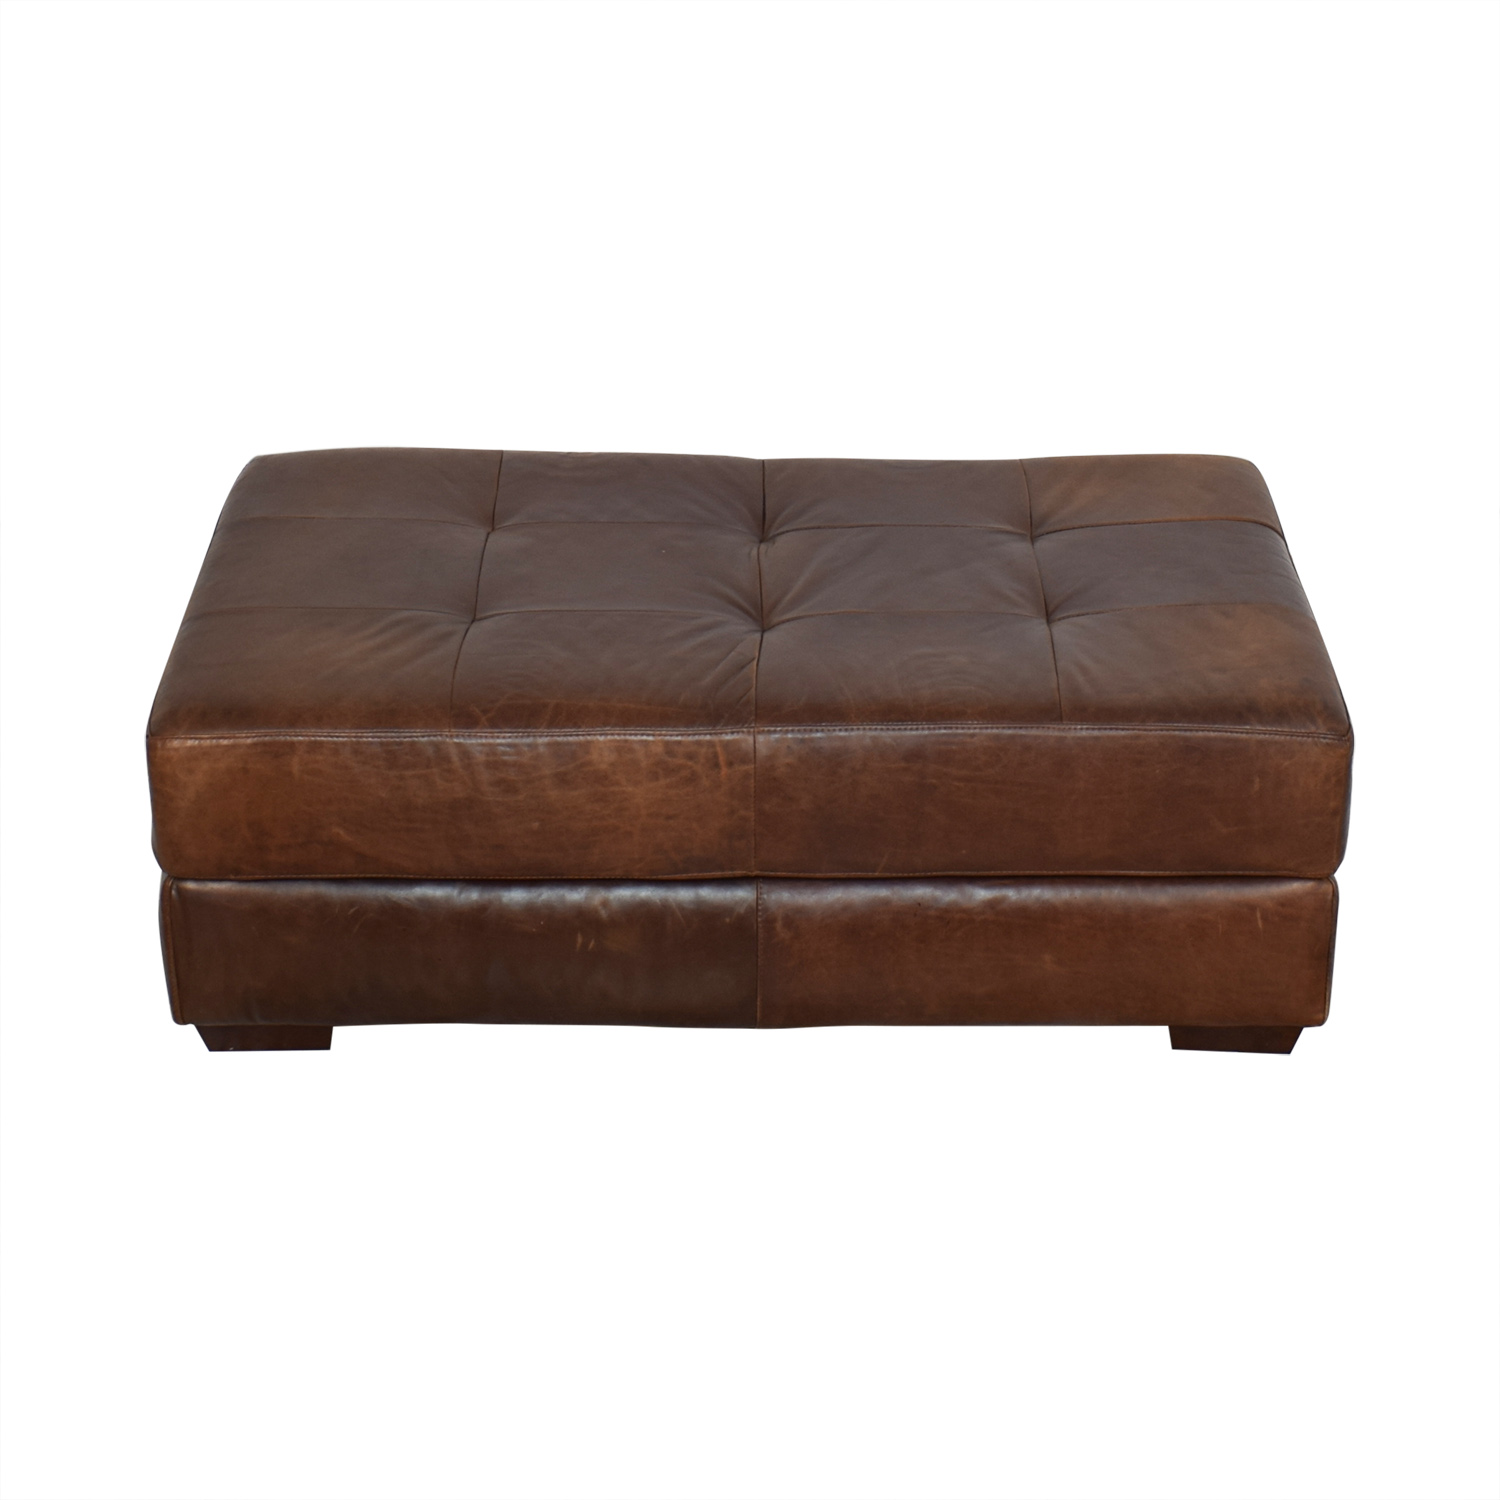 ABC Carpet & Home ABC Carpet & Home Leather Cocktail Ottoman dimensions